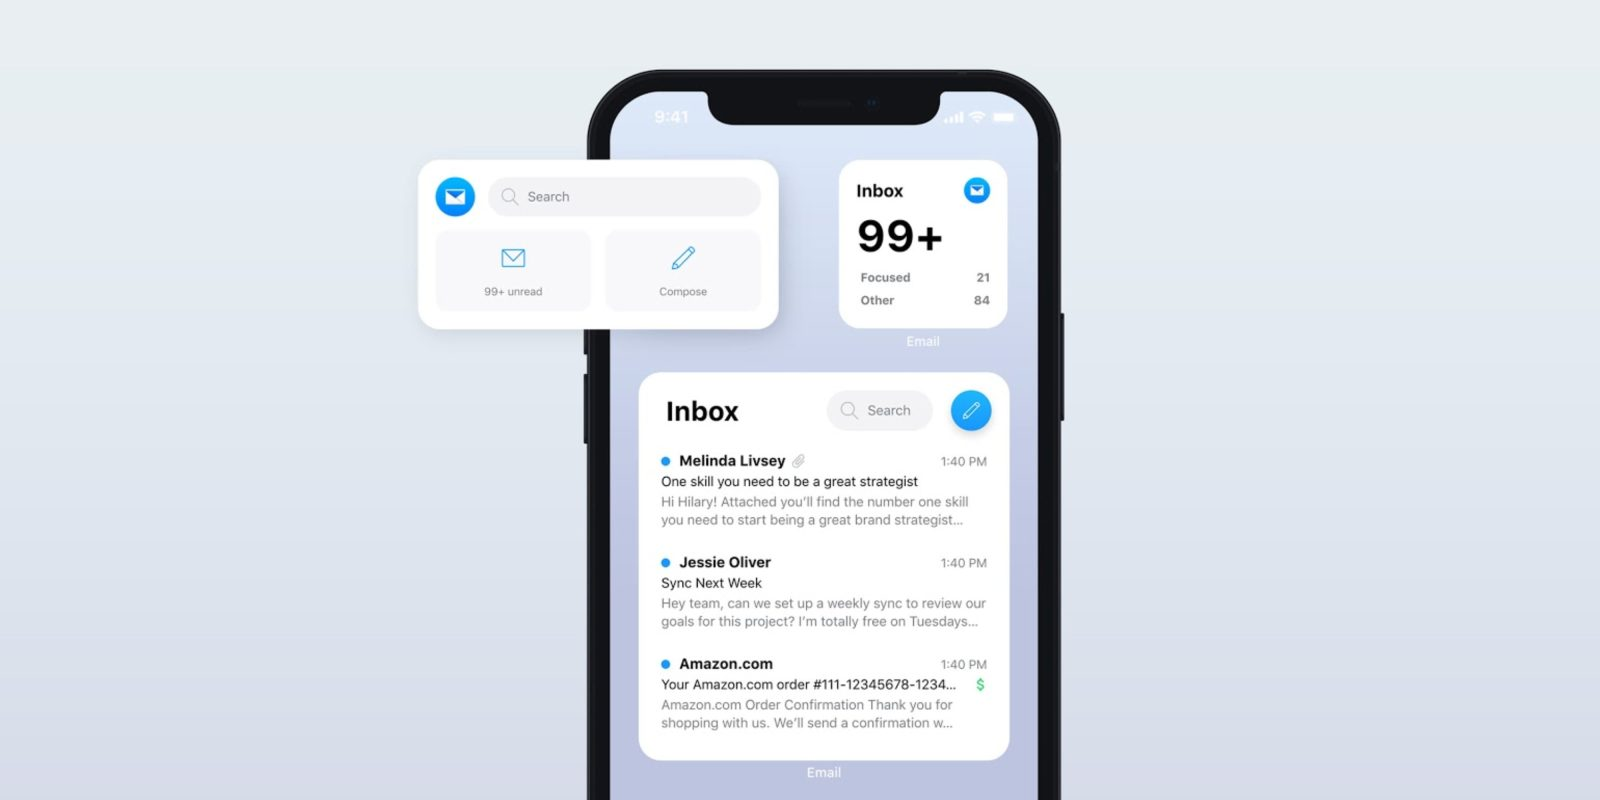 Edison Mail adds six new iOS 14 widgets to fill the gap left by Apple Mail